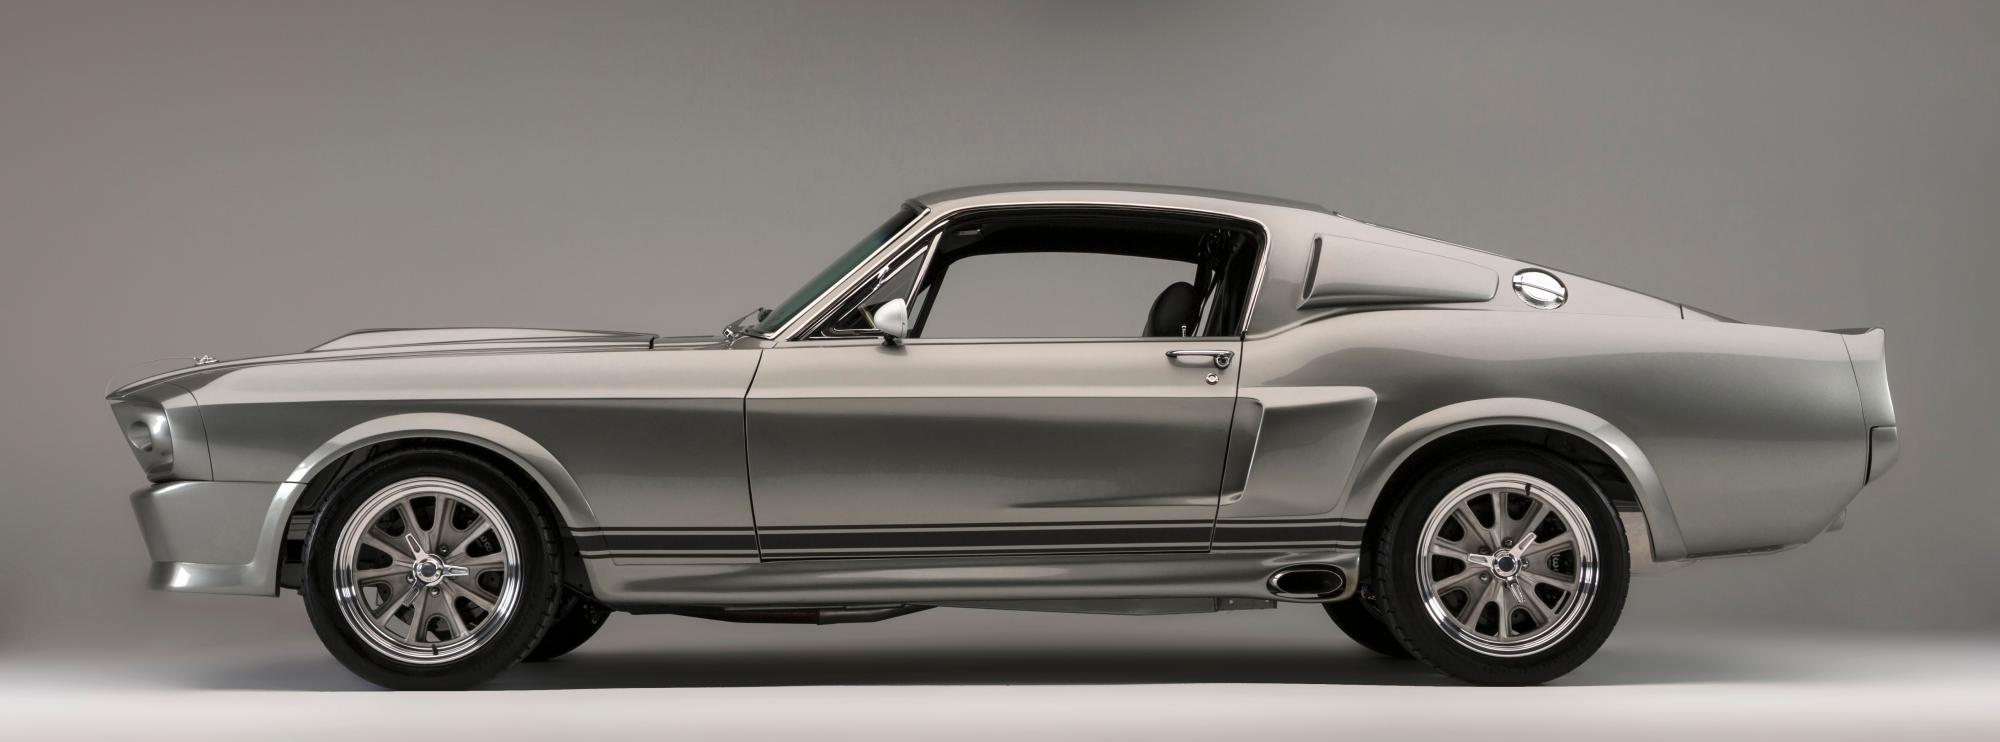 ELEANOR MUSTANG REPLICA, Builder, For Sale, 1967 Fastback, Brand New ...